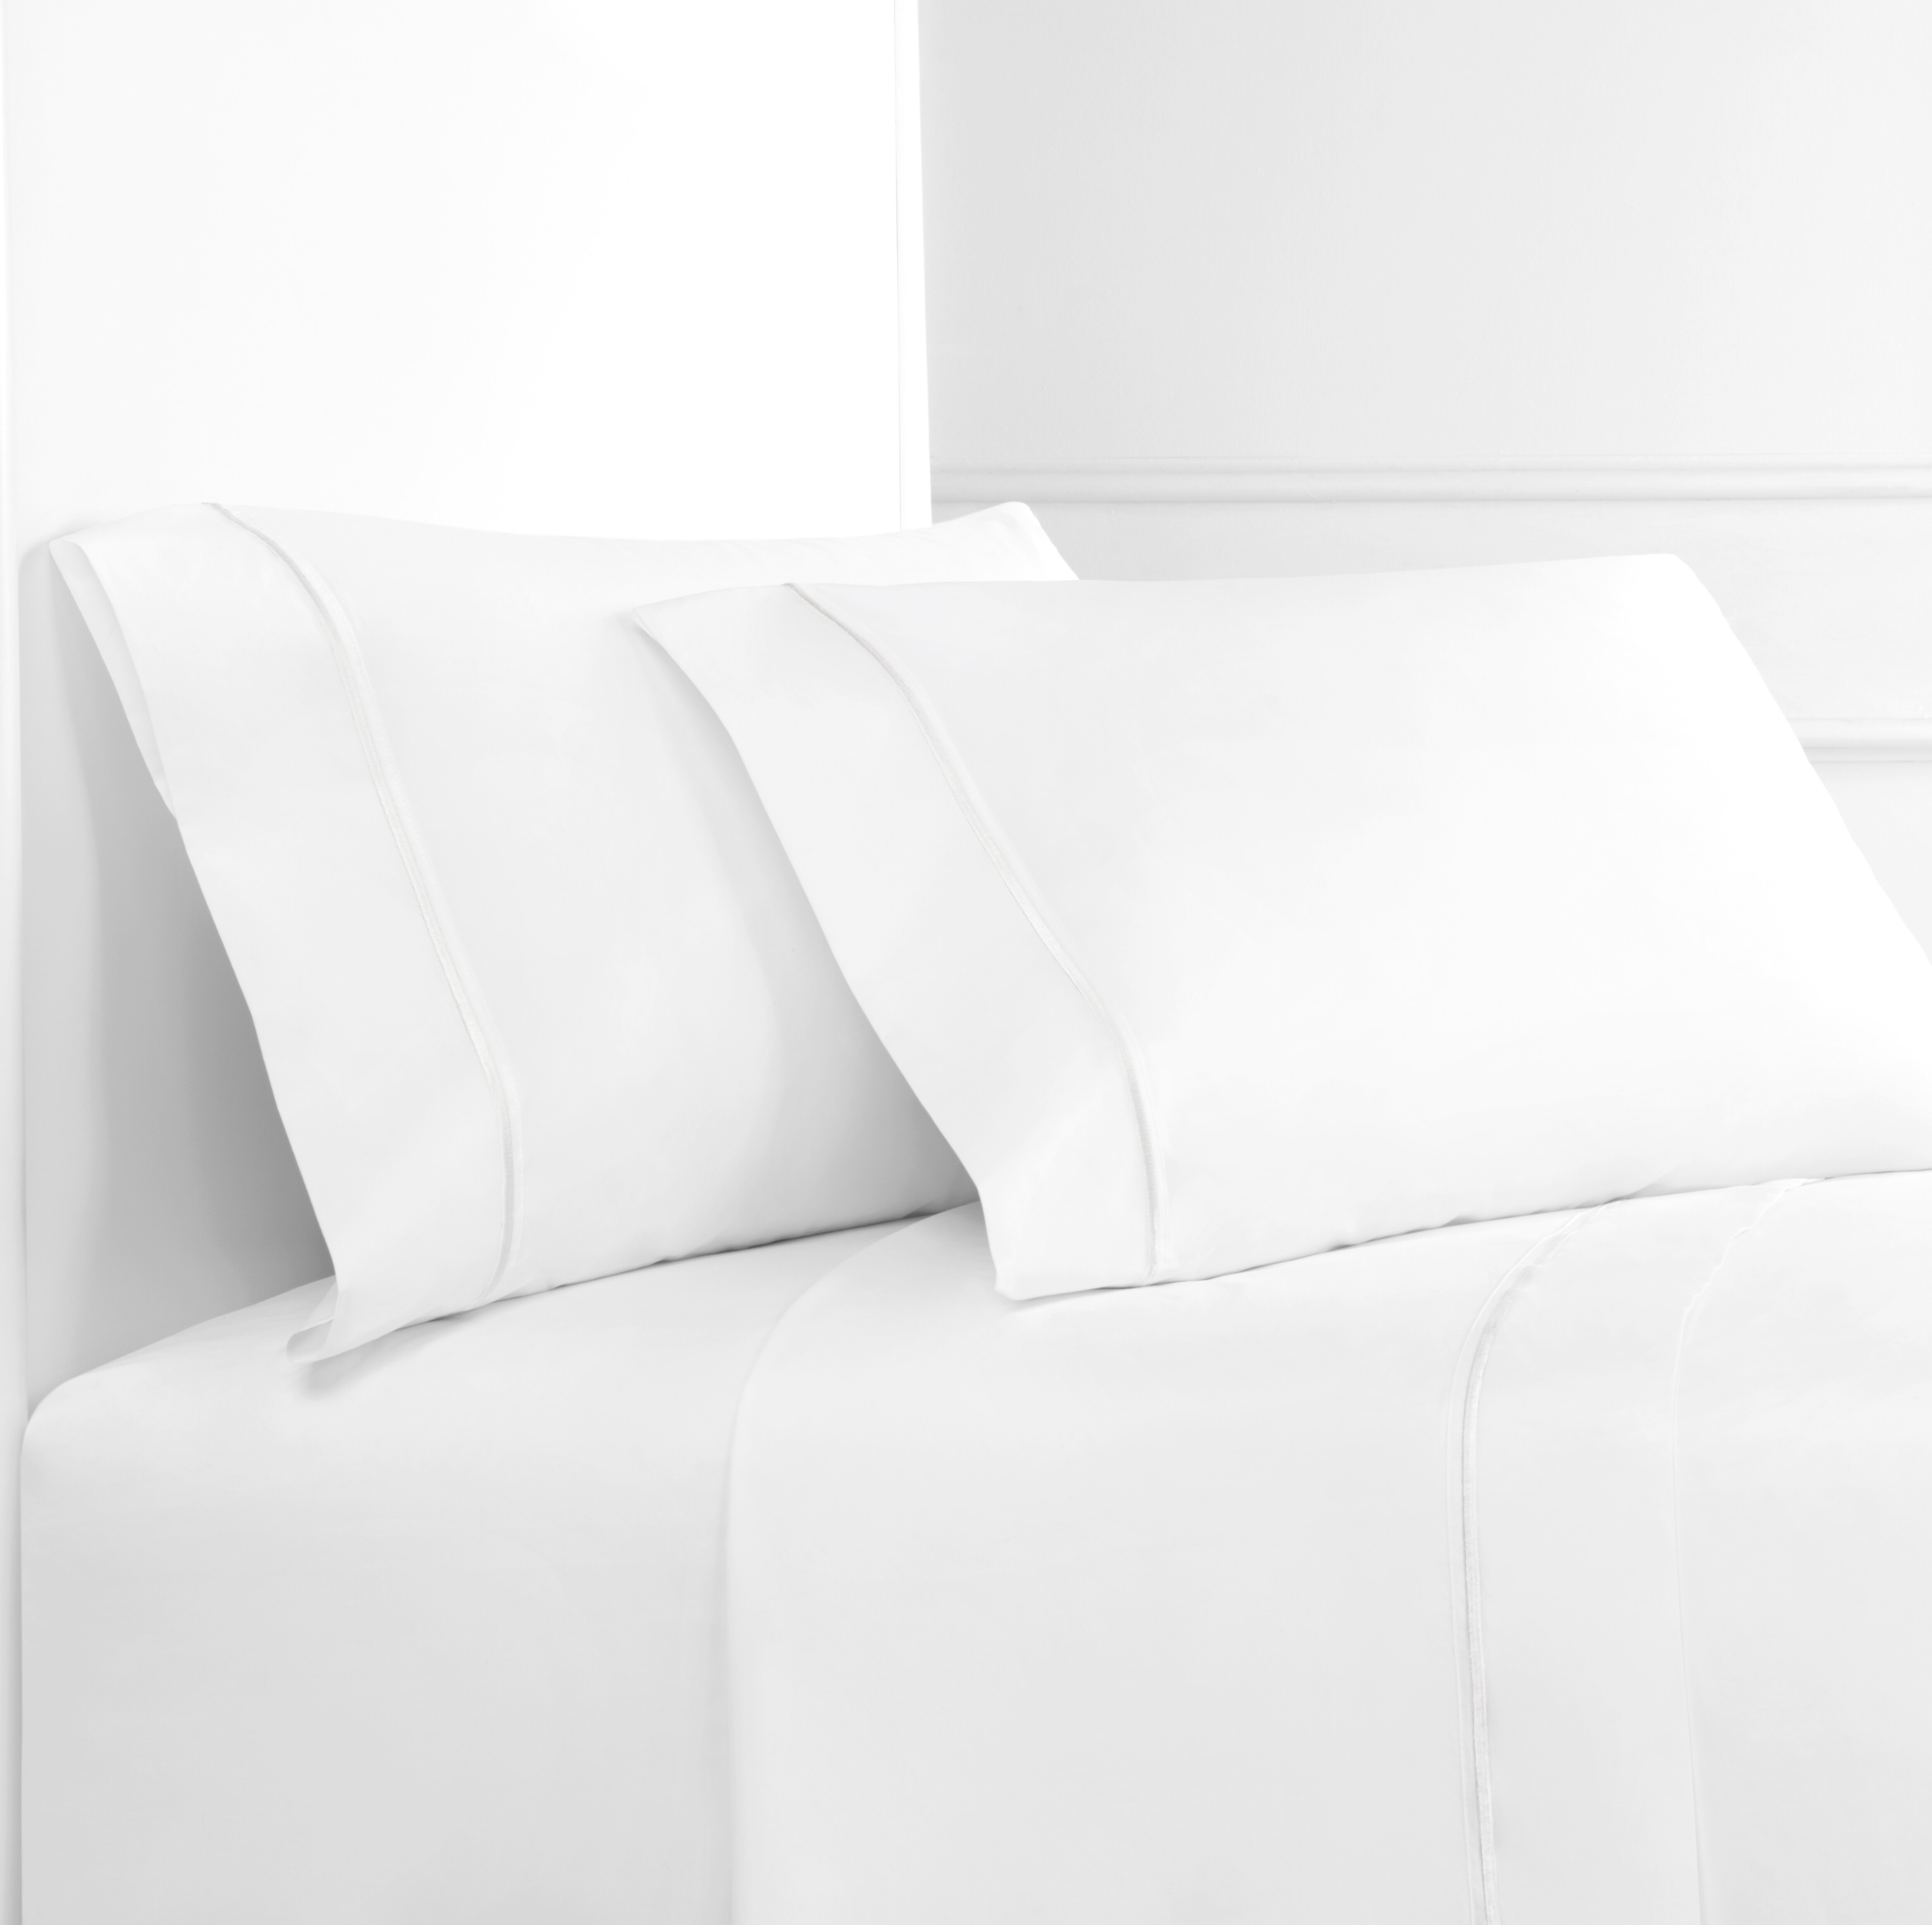 Red Barrel Studio Crose 300 Thread Count Cotton Percale Sheet Set Reviews Wayfair